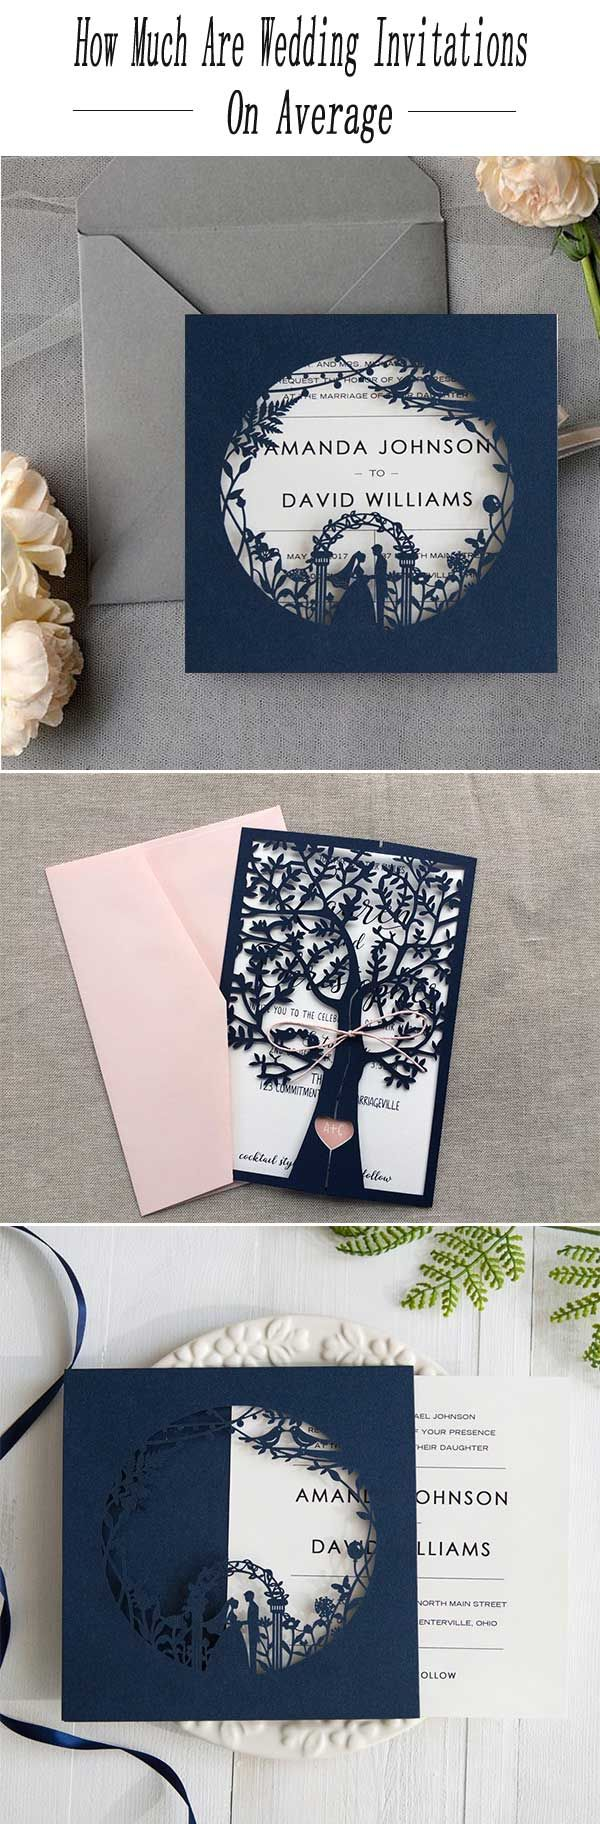 AVERAGE COST OF WEDDING INVITATIONS: HOW MUCH ARE THEY? - Wedding Invites Paper navy blue wedding invitation/ laser cut wedding invitations/ discount wedding invitation/  cheap wedding invitations